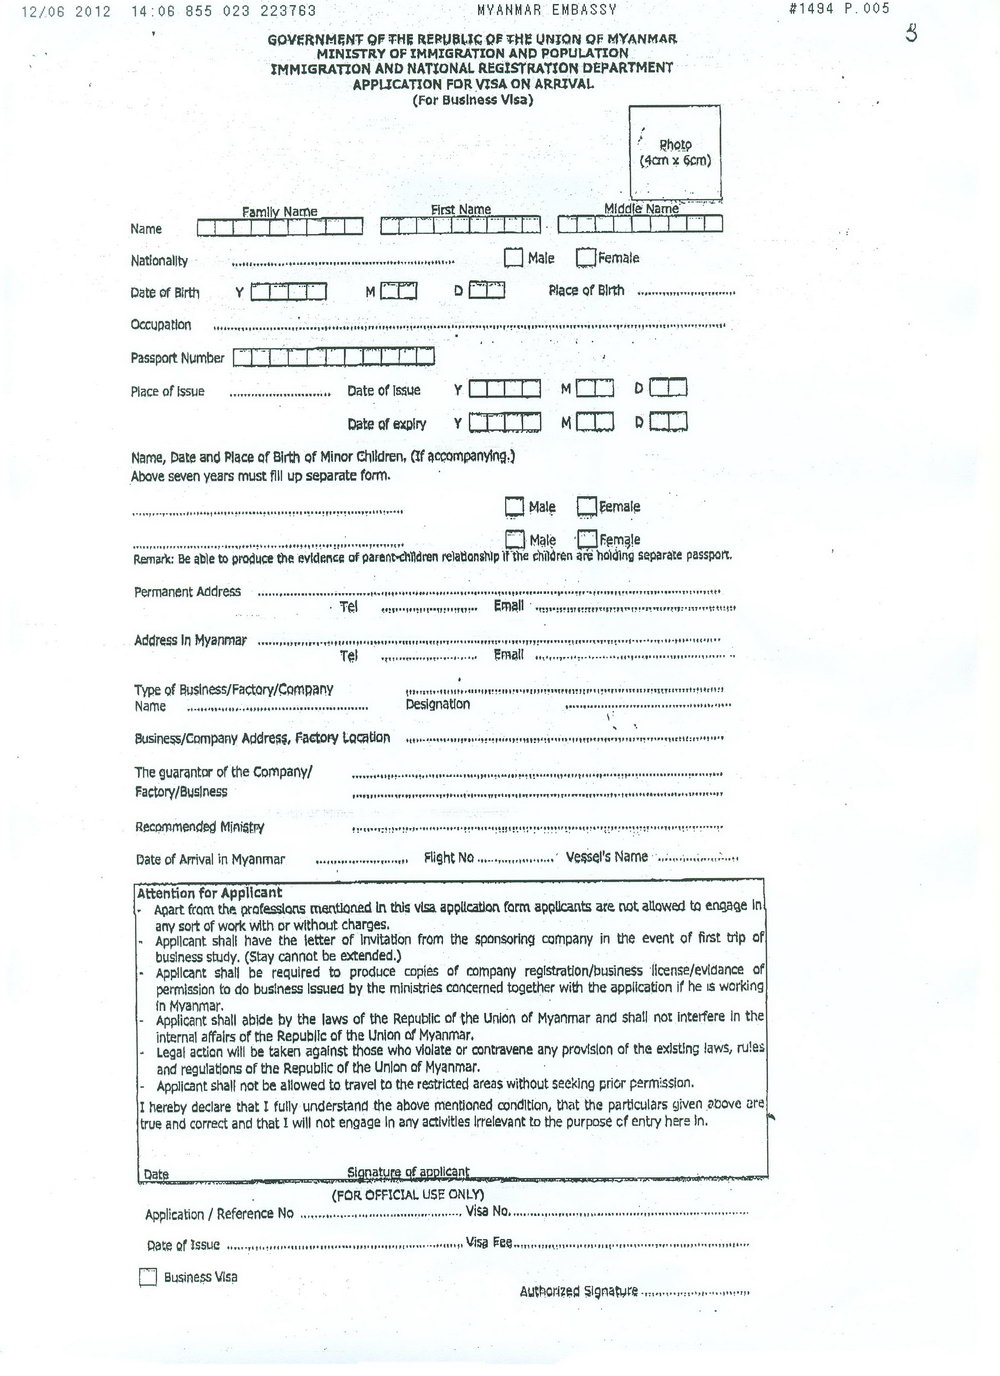 Myanmar Visa Application Form For Malaysian